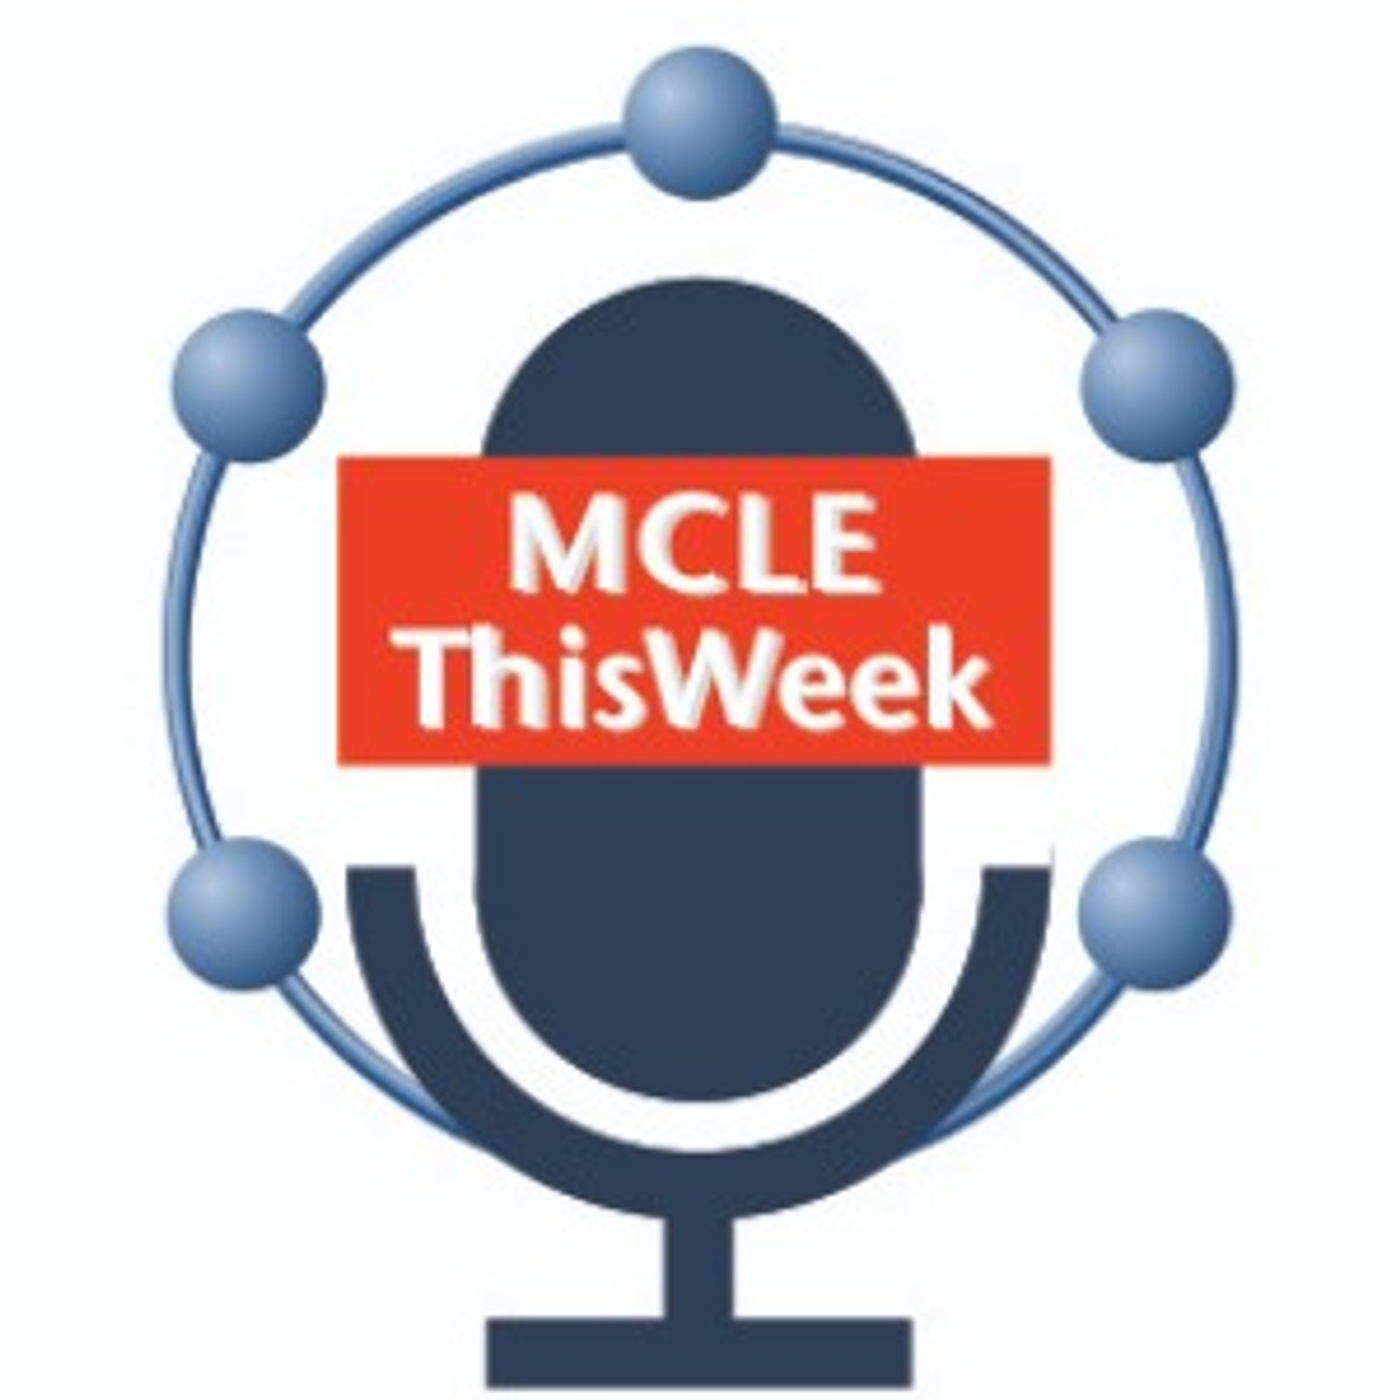 MCLE ThisWeek Podcast Logo